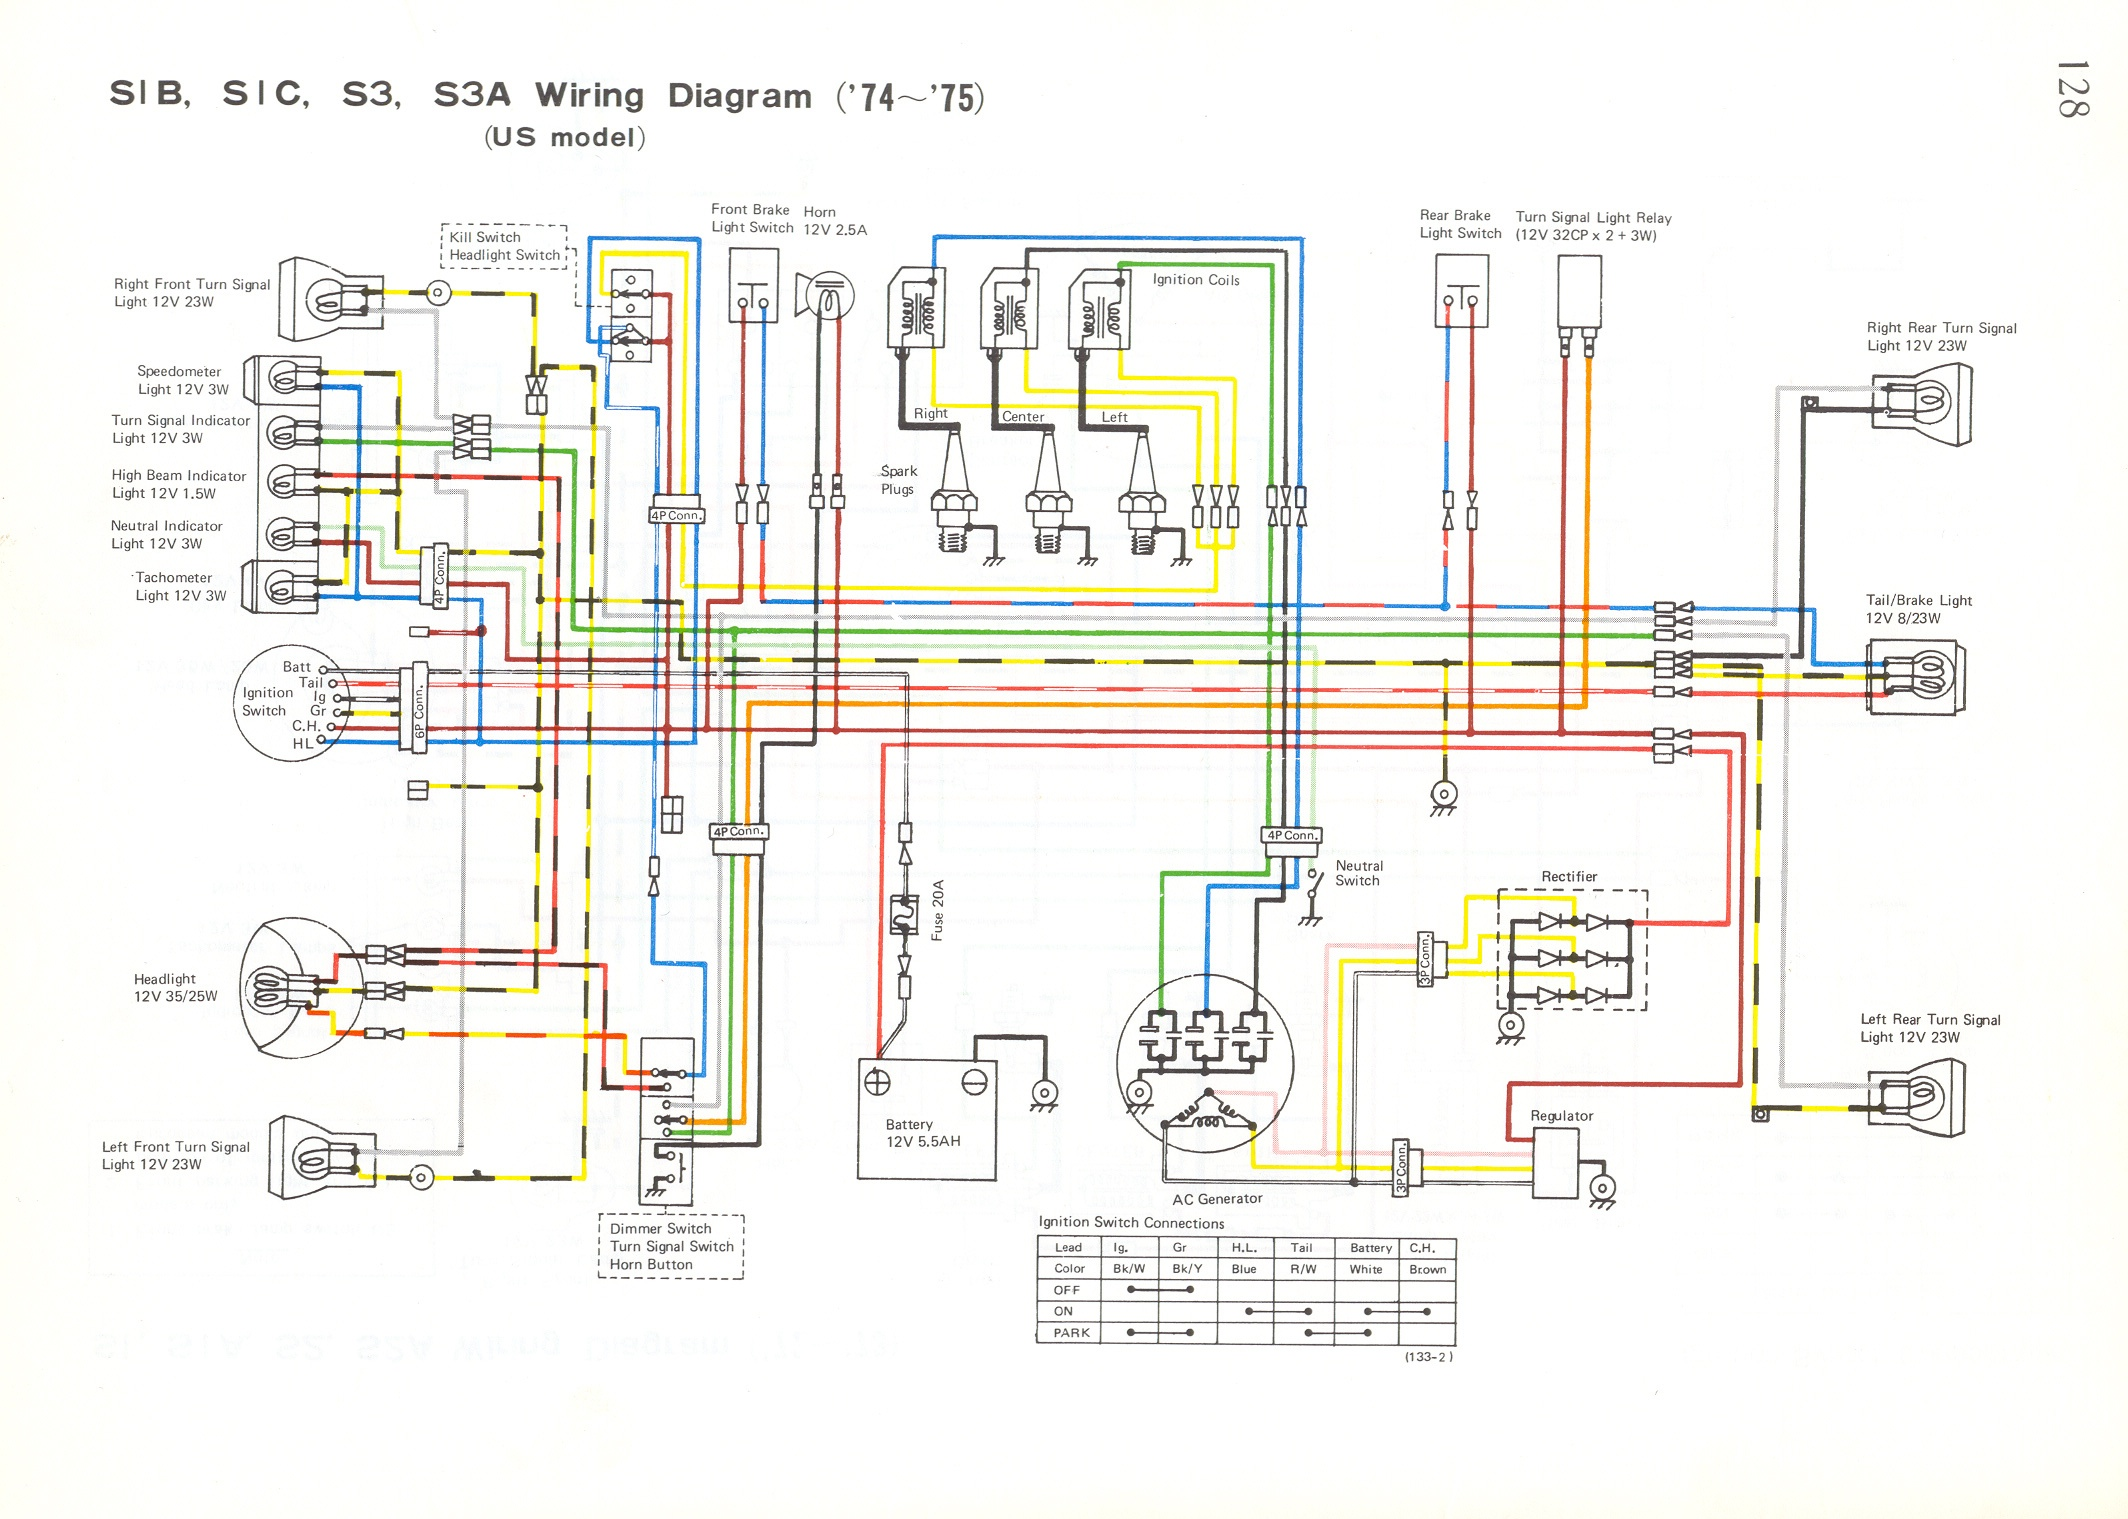 Suzuki Gt550 Wiring Diagram Books Of 2004 Passat 4motion Fuse Box Diagrams Rh 3cyl Com